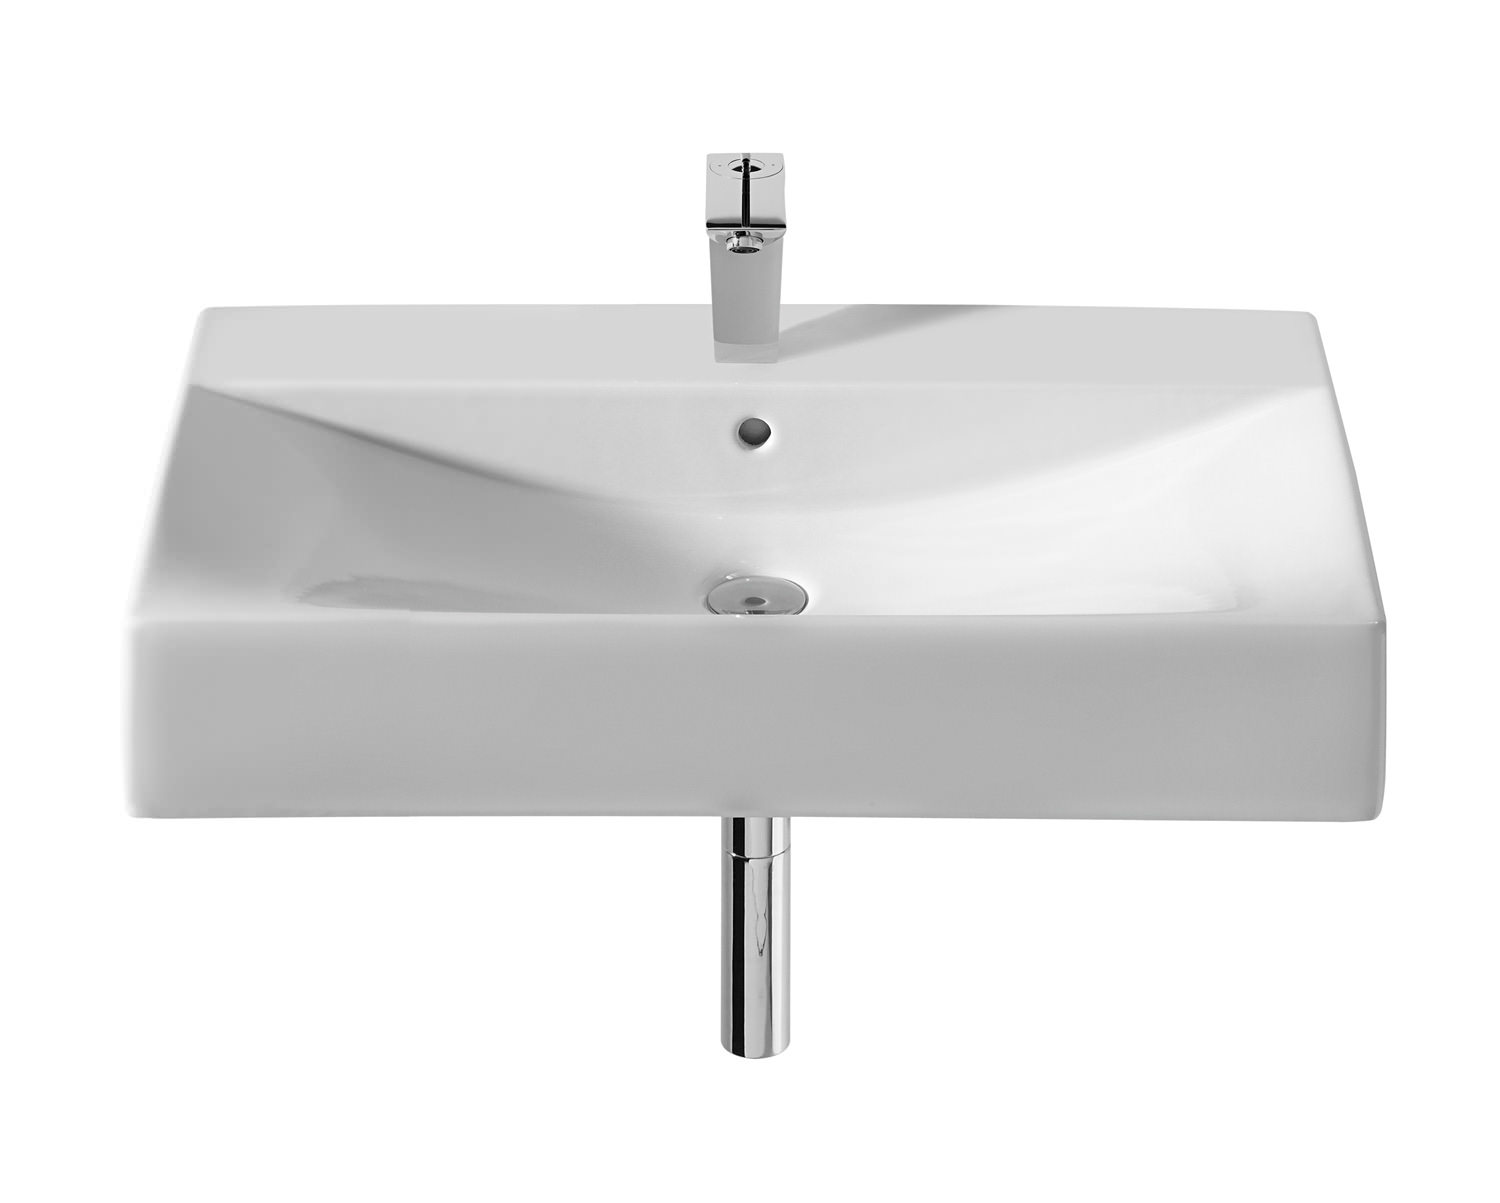 Roca Diverta White Vanity Basin 750mm Wide 327110000